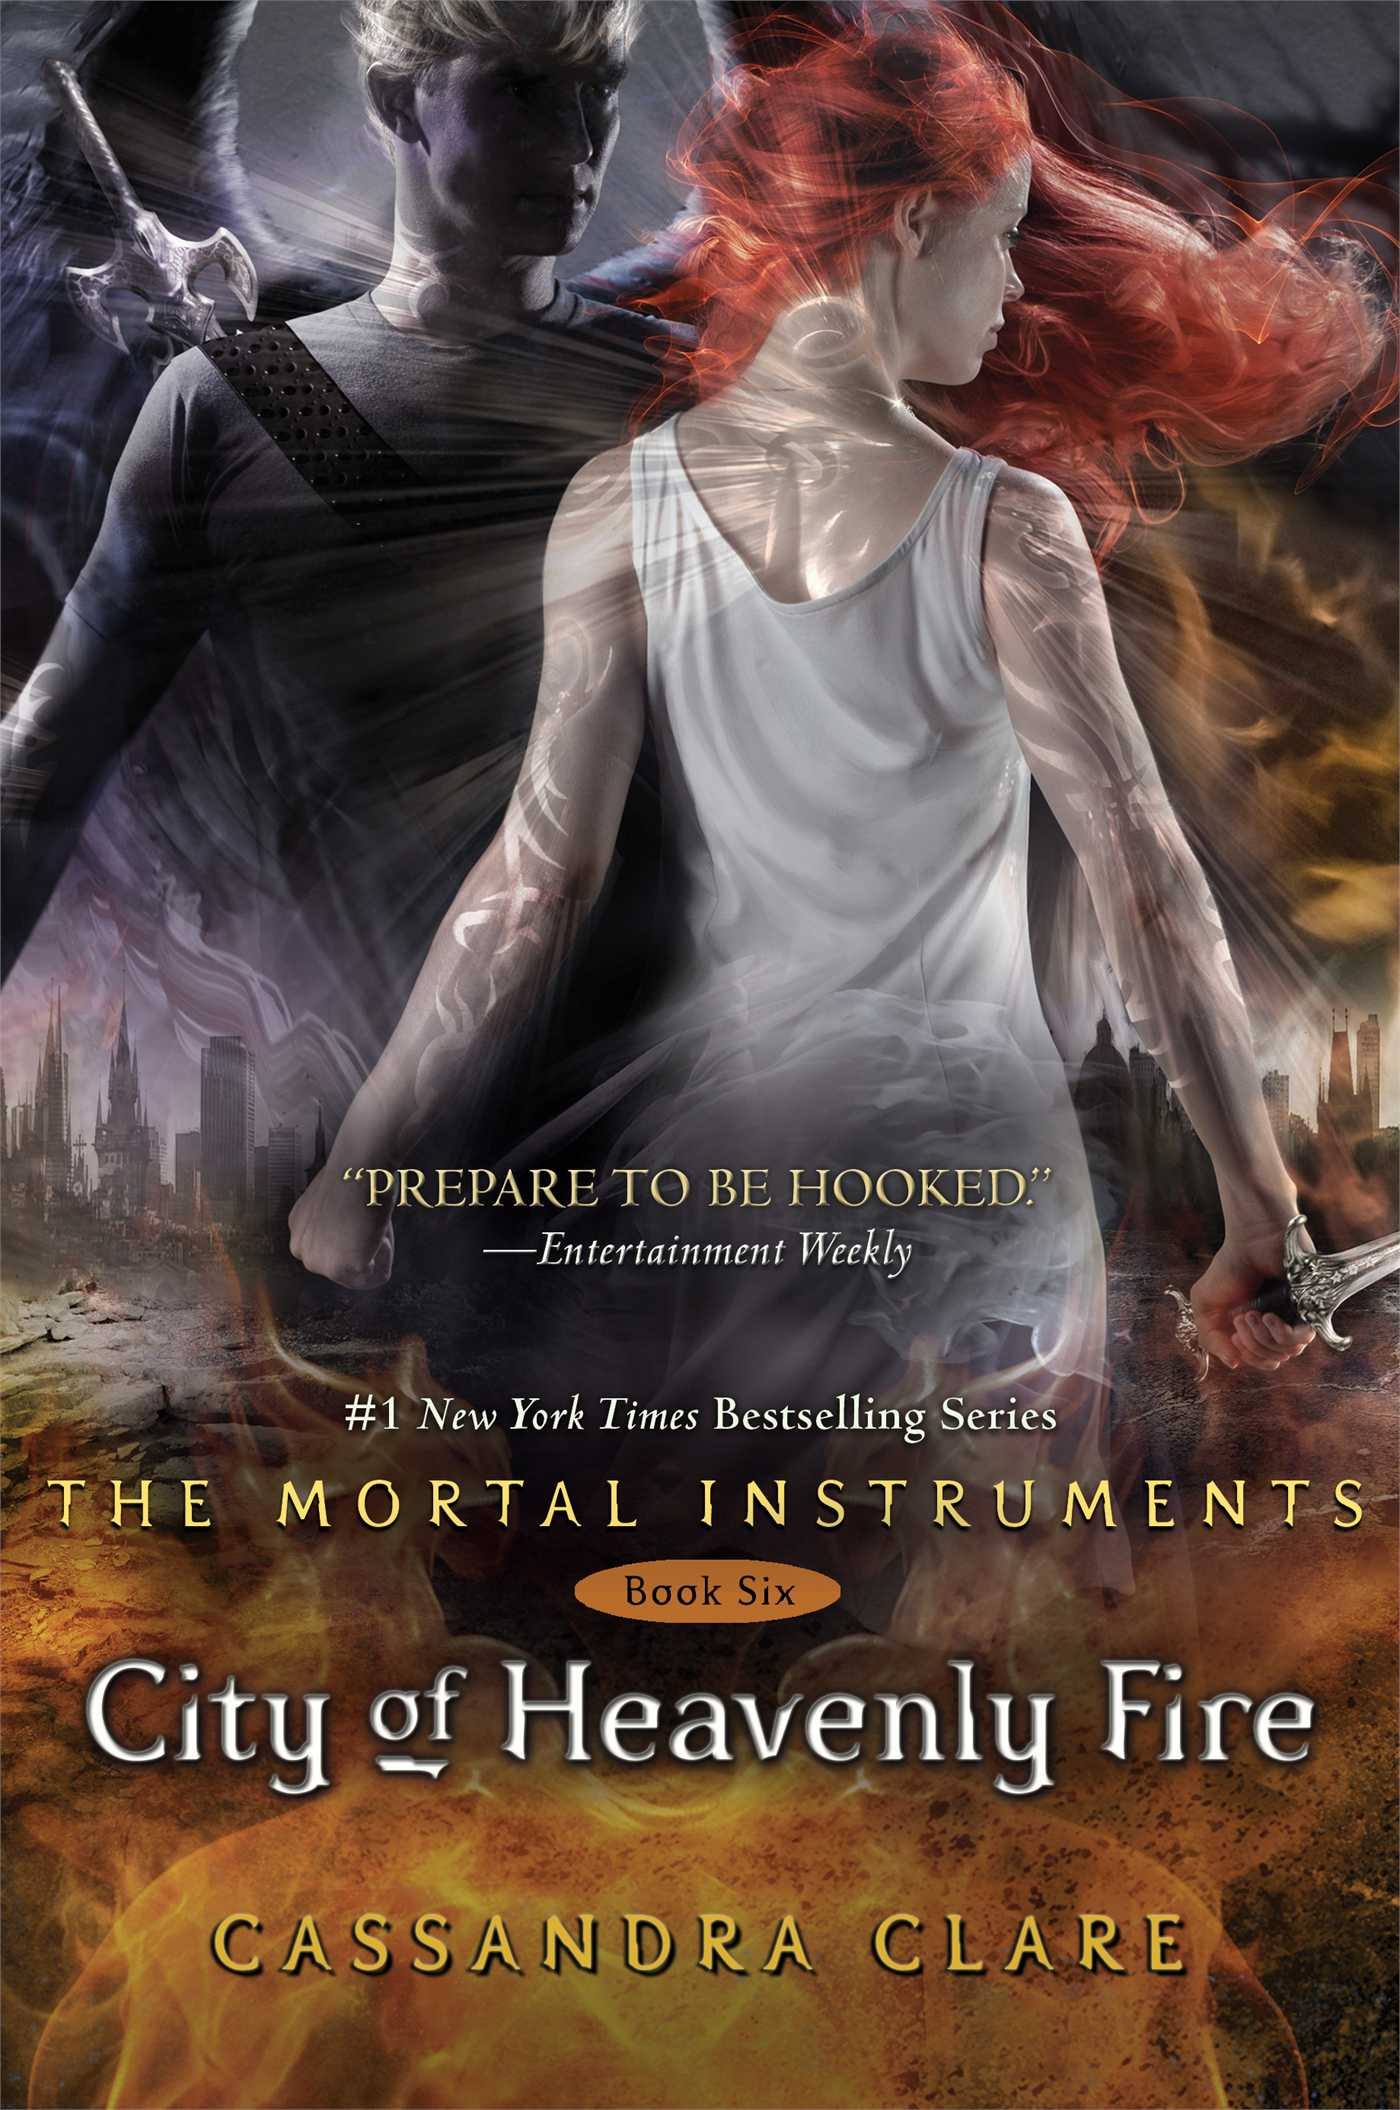 City-of-heavenly-fire-9781442416895_hr